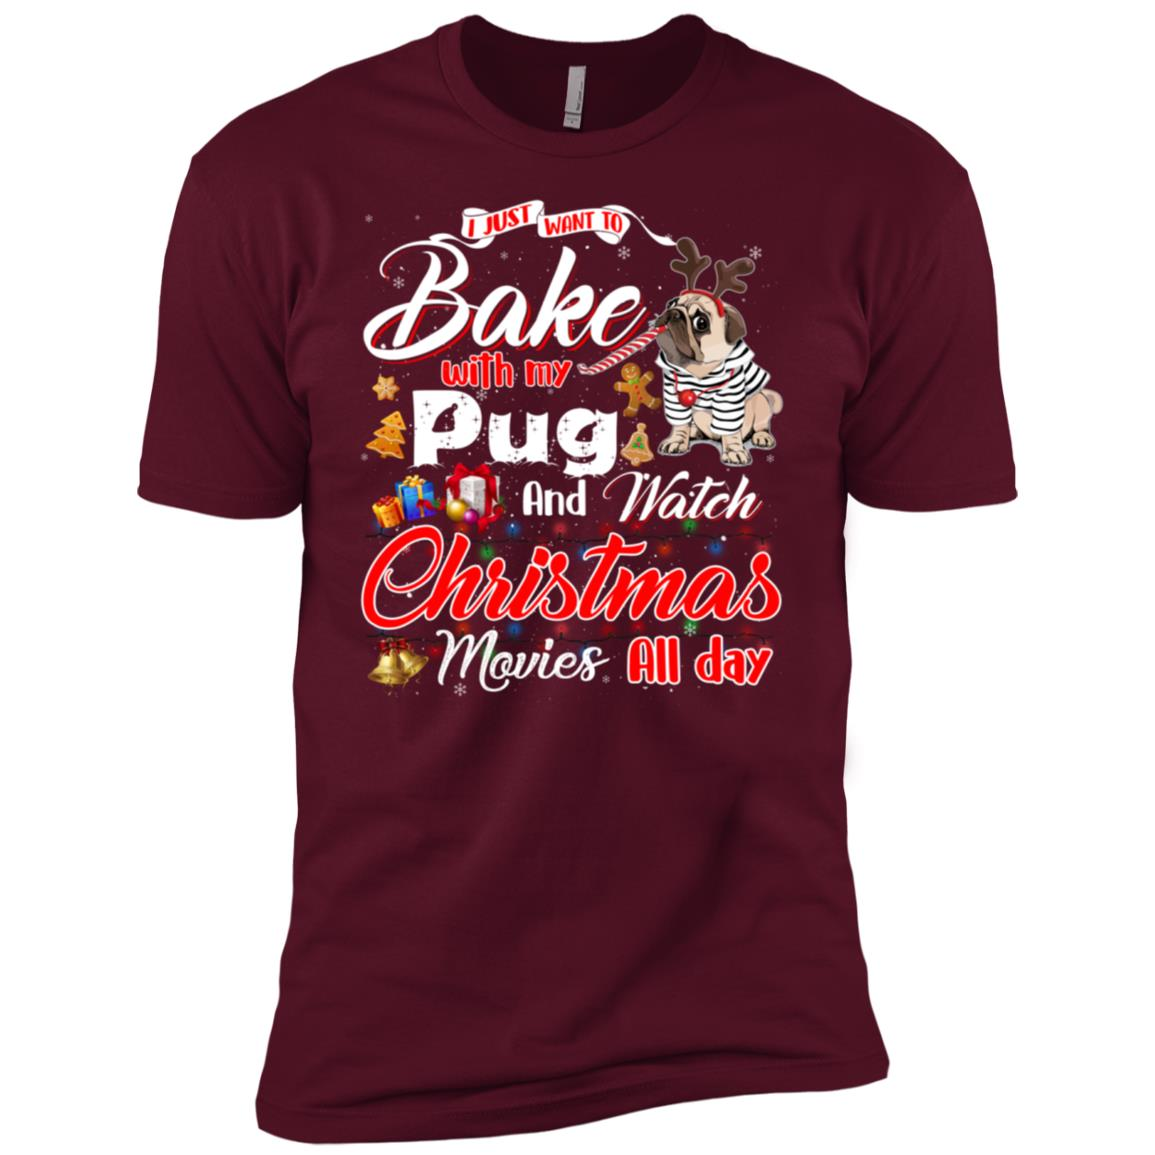 Bake Stuff with Pug And Watch Christmas Movies Men Short Sleeve T-Shirt